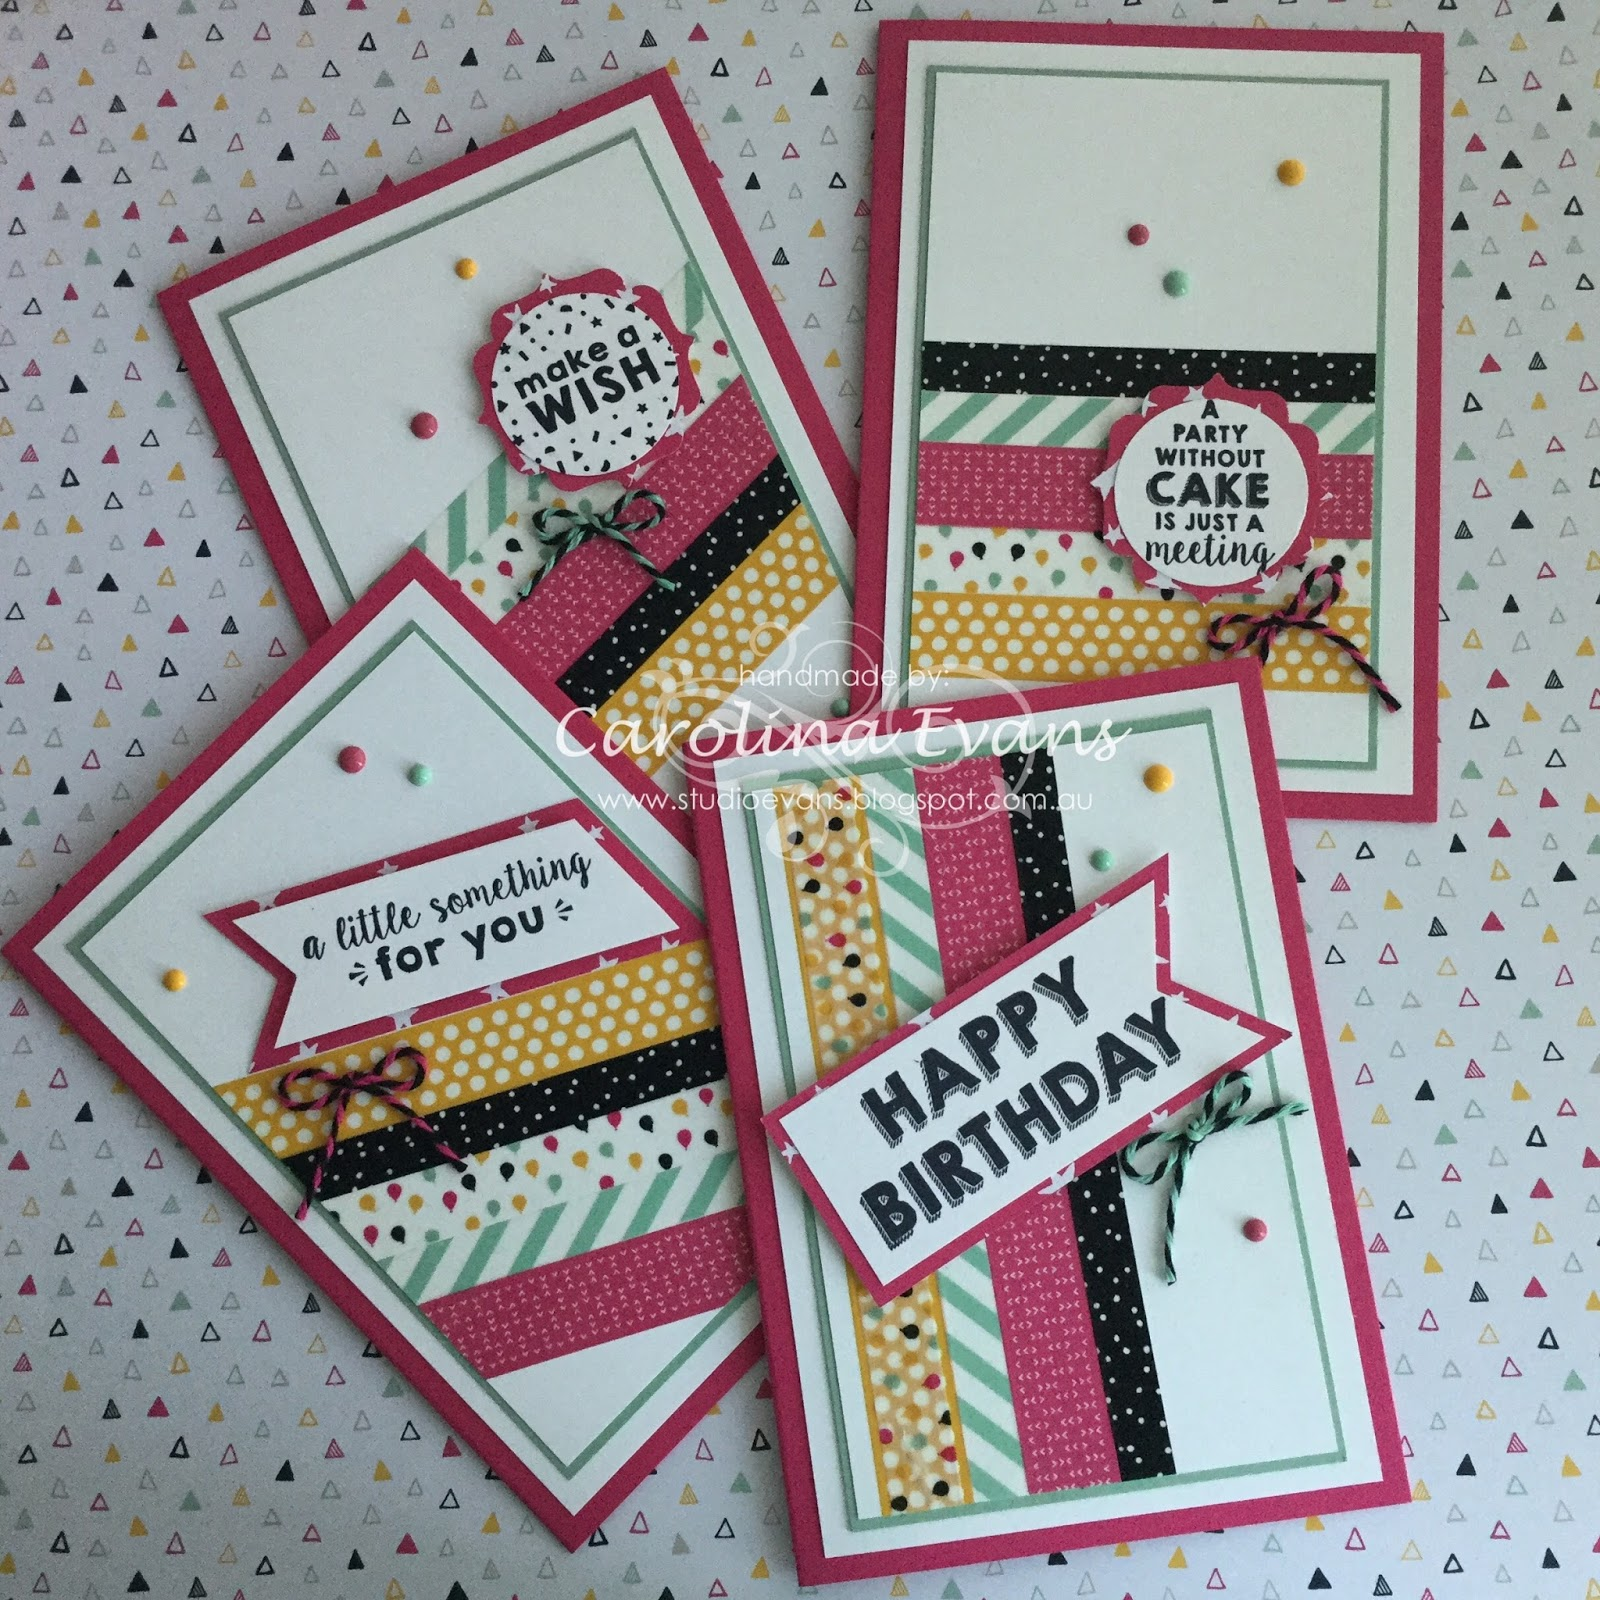 Carolina evans stampin up demonstrator melbourne australia stacks of birthday cards its my party suite bookmarktalkfo Choice Image